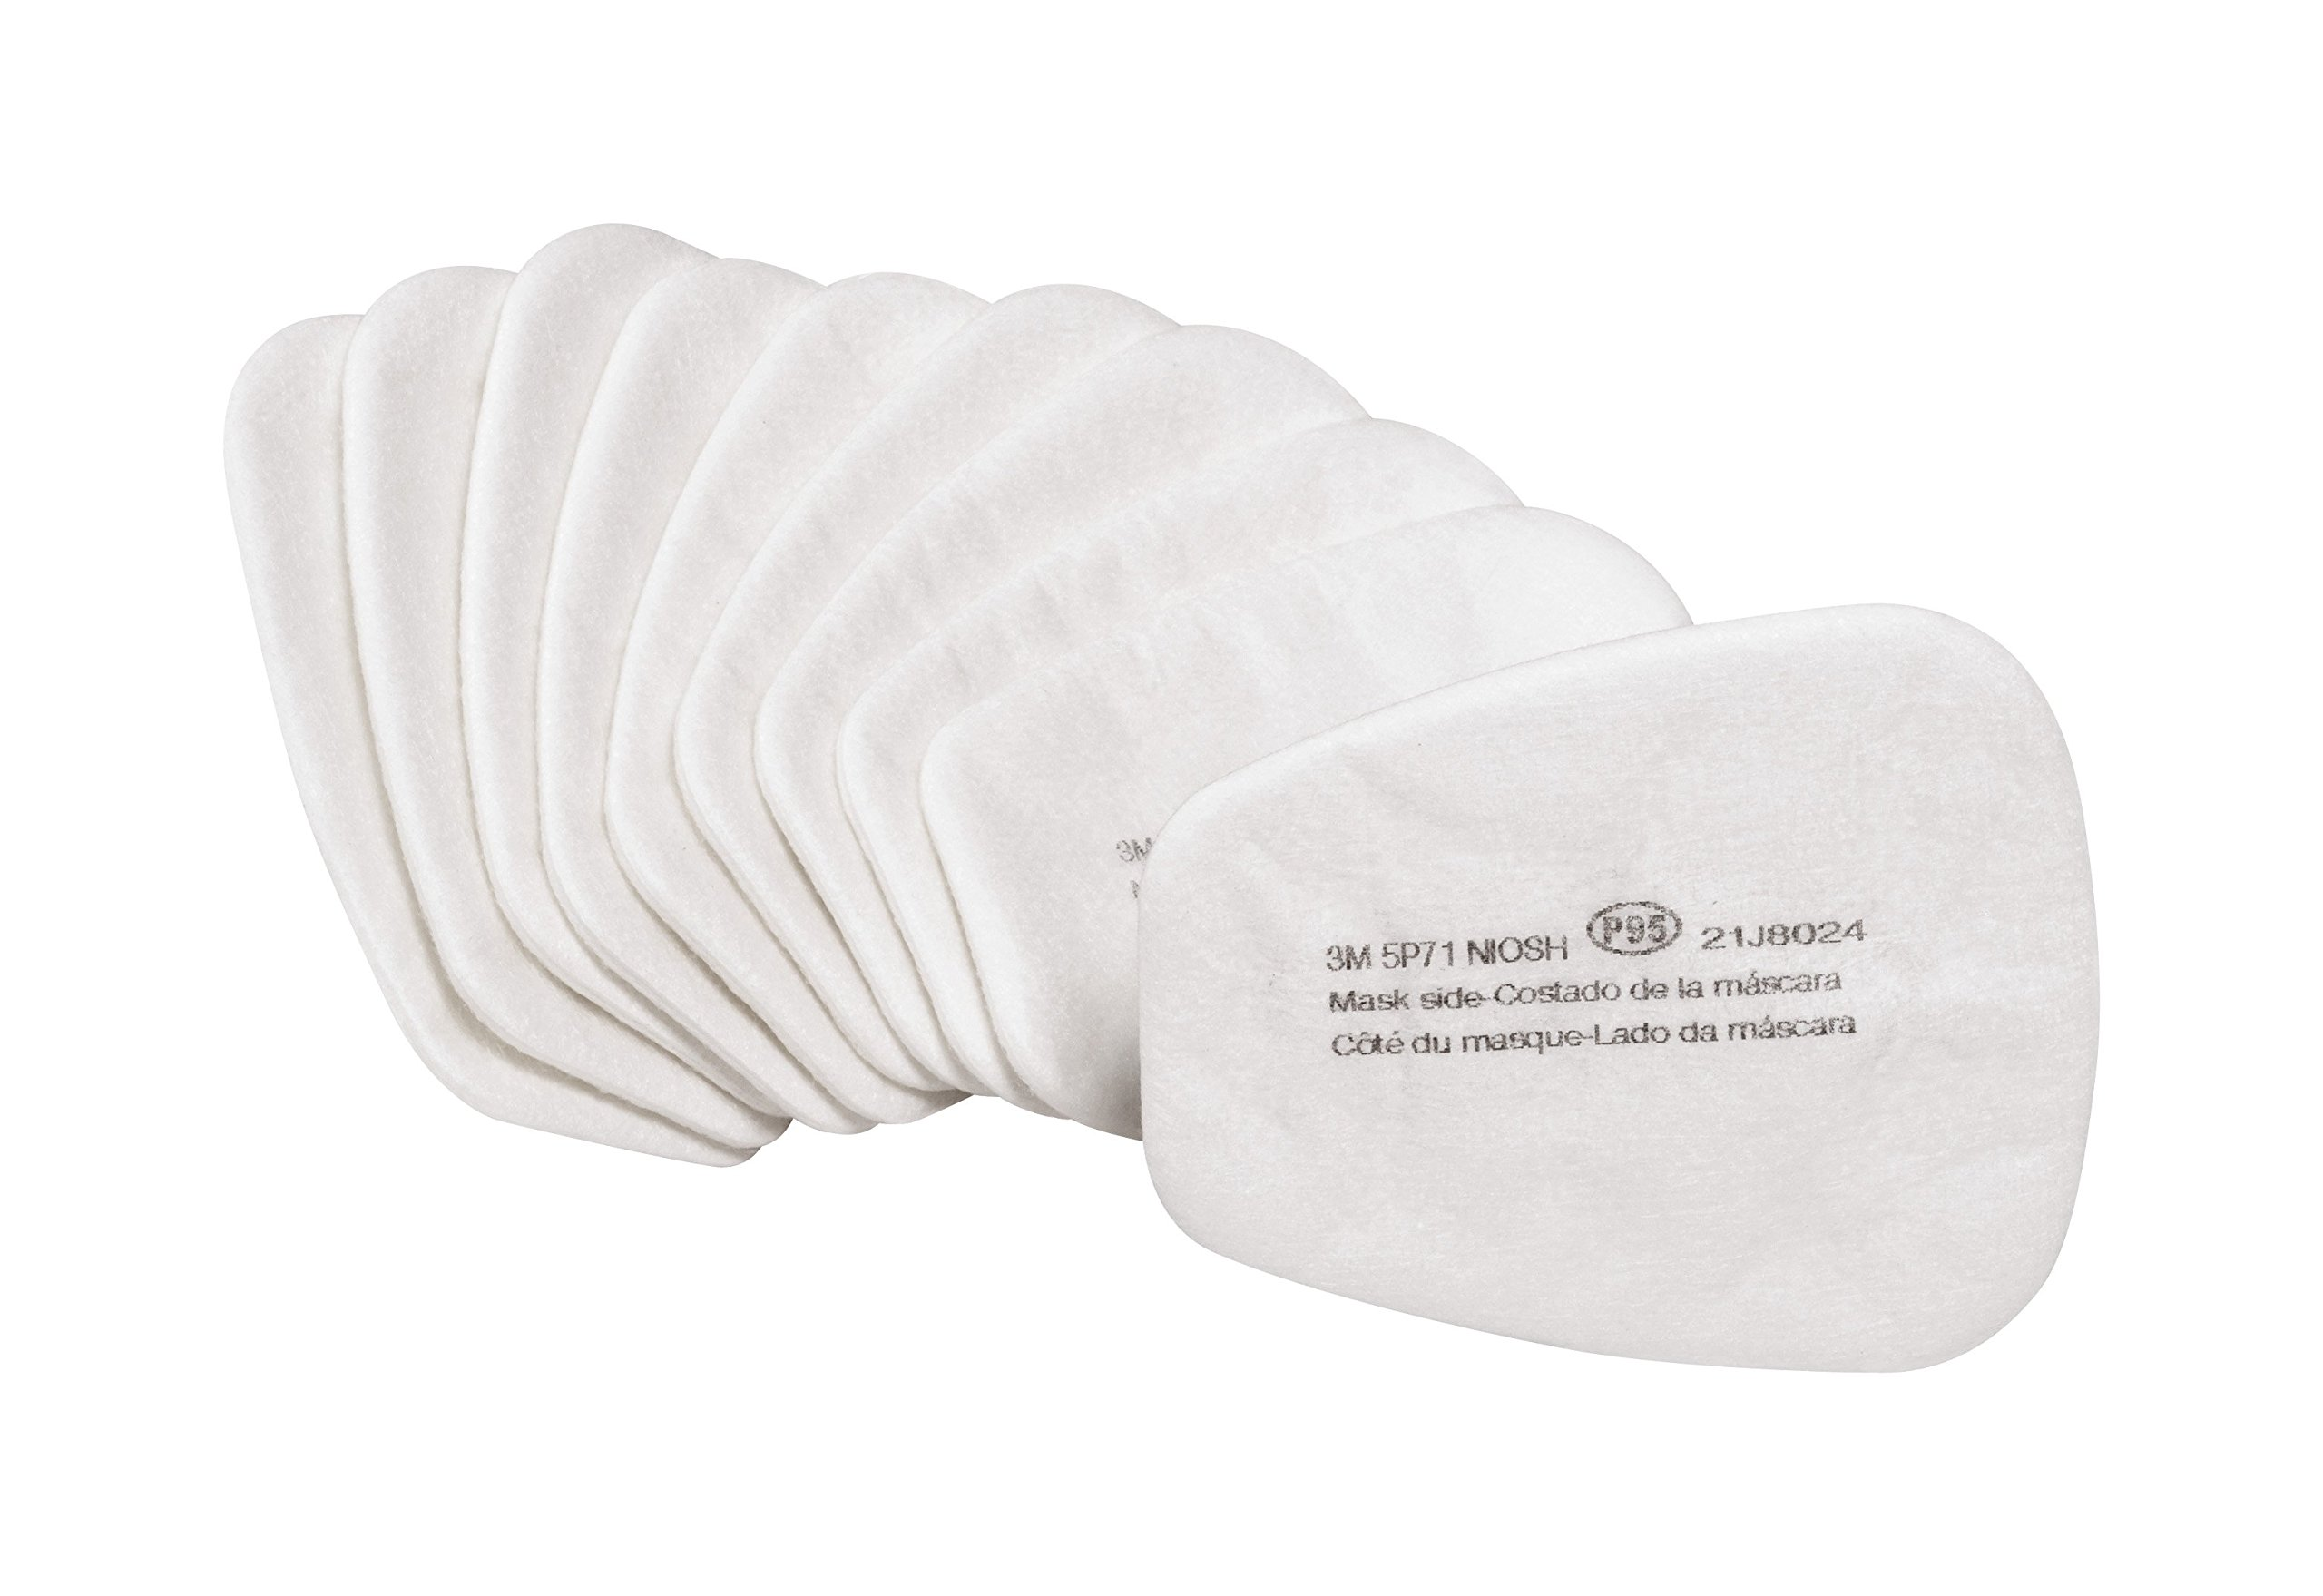 3Maa7|#3M 5P71PB1-B Particulate Prefilters, 10/ Pack, 5 Packper Case, by 3M Safety (Image #1)